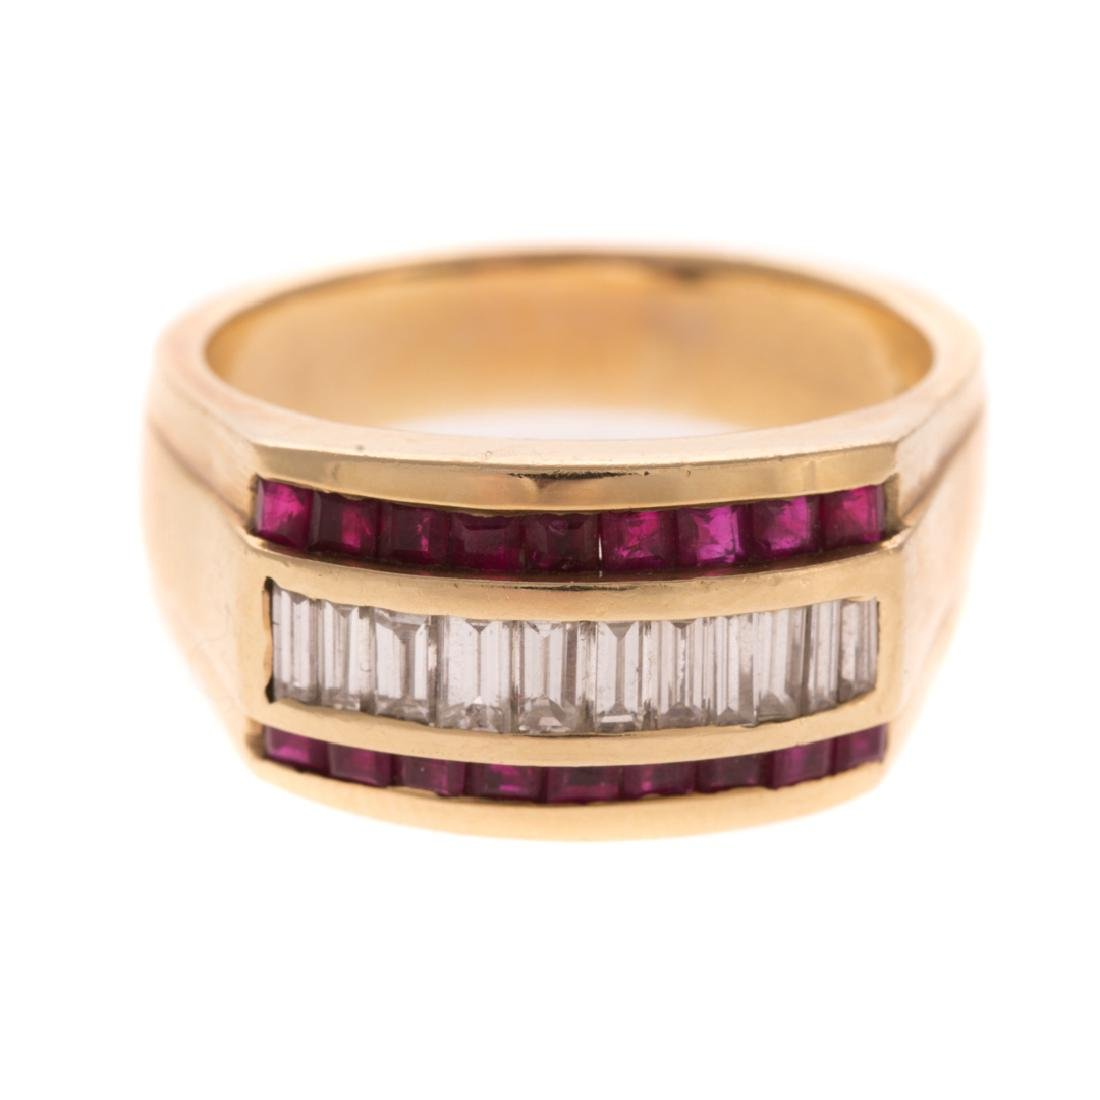 A Gentlemen's Diamond and Ruby Ring in 14K